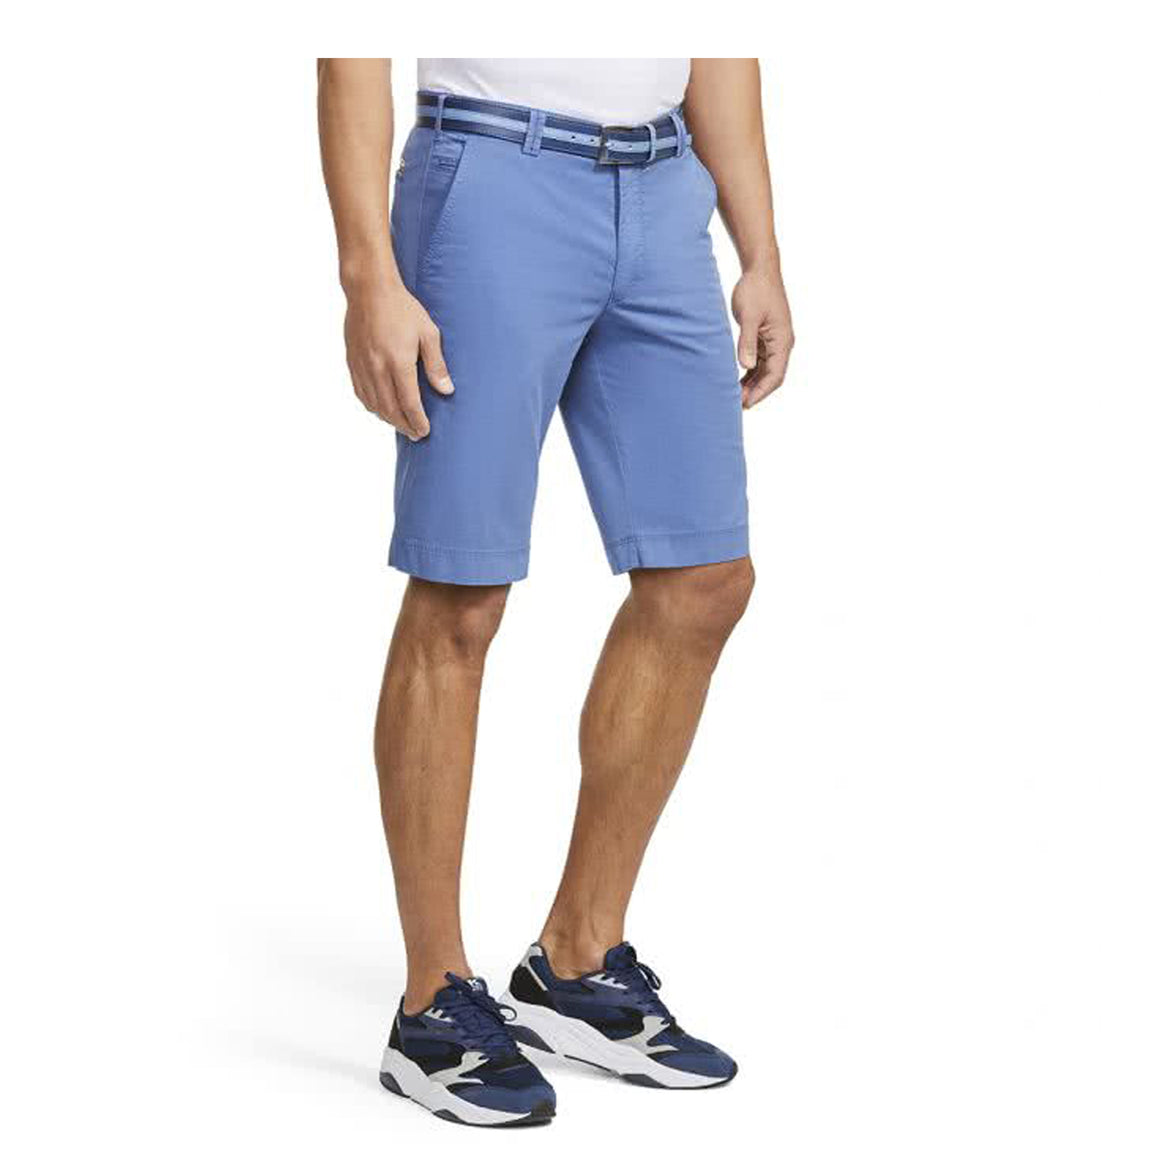 B-Palma Cotton Twill Short  for Men in Blue